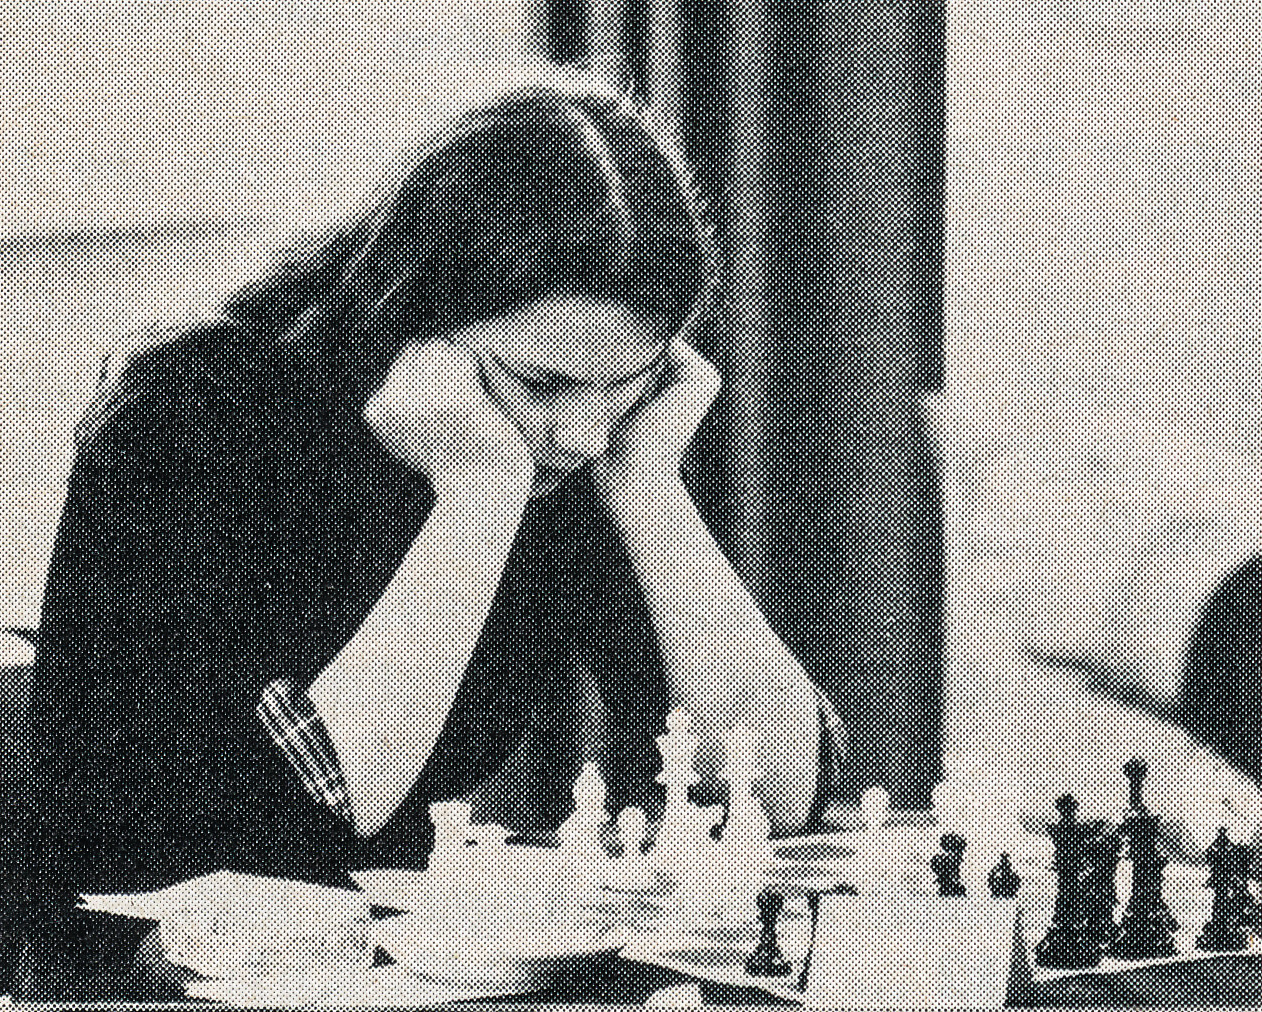 Susan Caldwell playing board two in the London - Belgrade Telex Match on April 3rd, 1976 from the St. James Hotel, Buckingham Gate. Sourced from BCM, Volume XCVI (96), Number 5, page 192. Photographer probably Freddy Reilly.